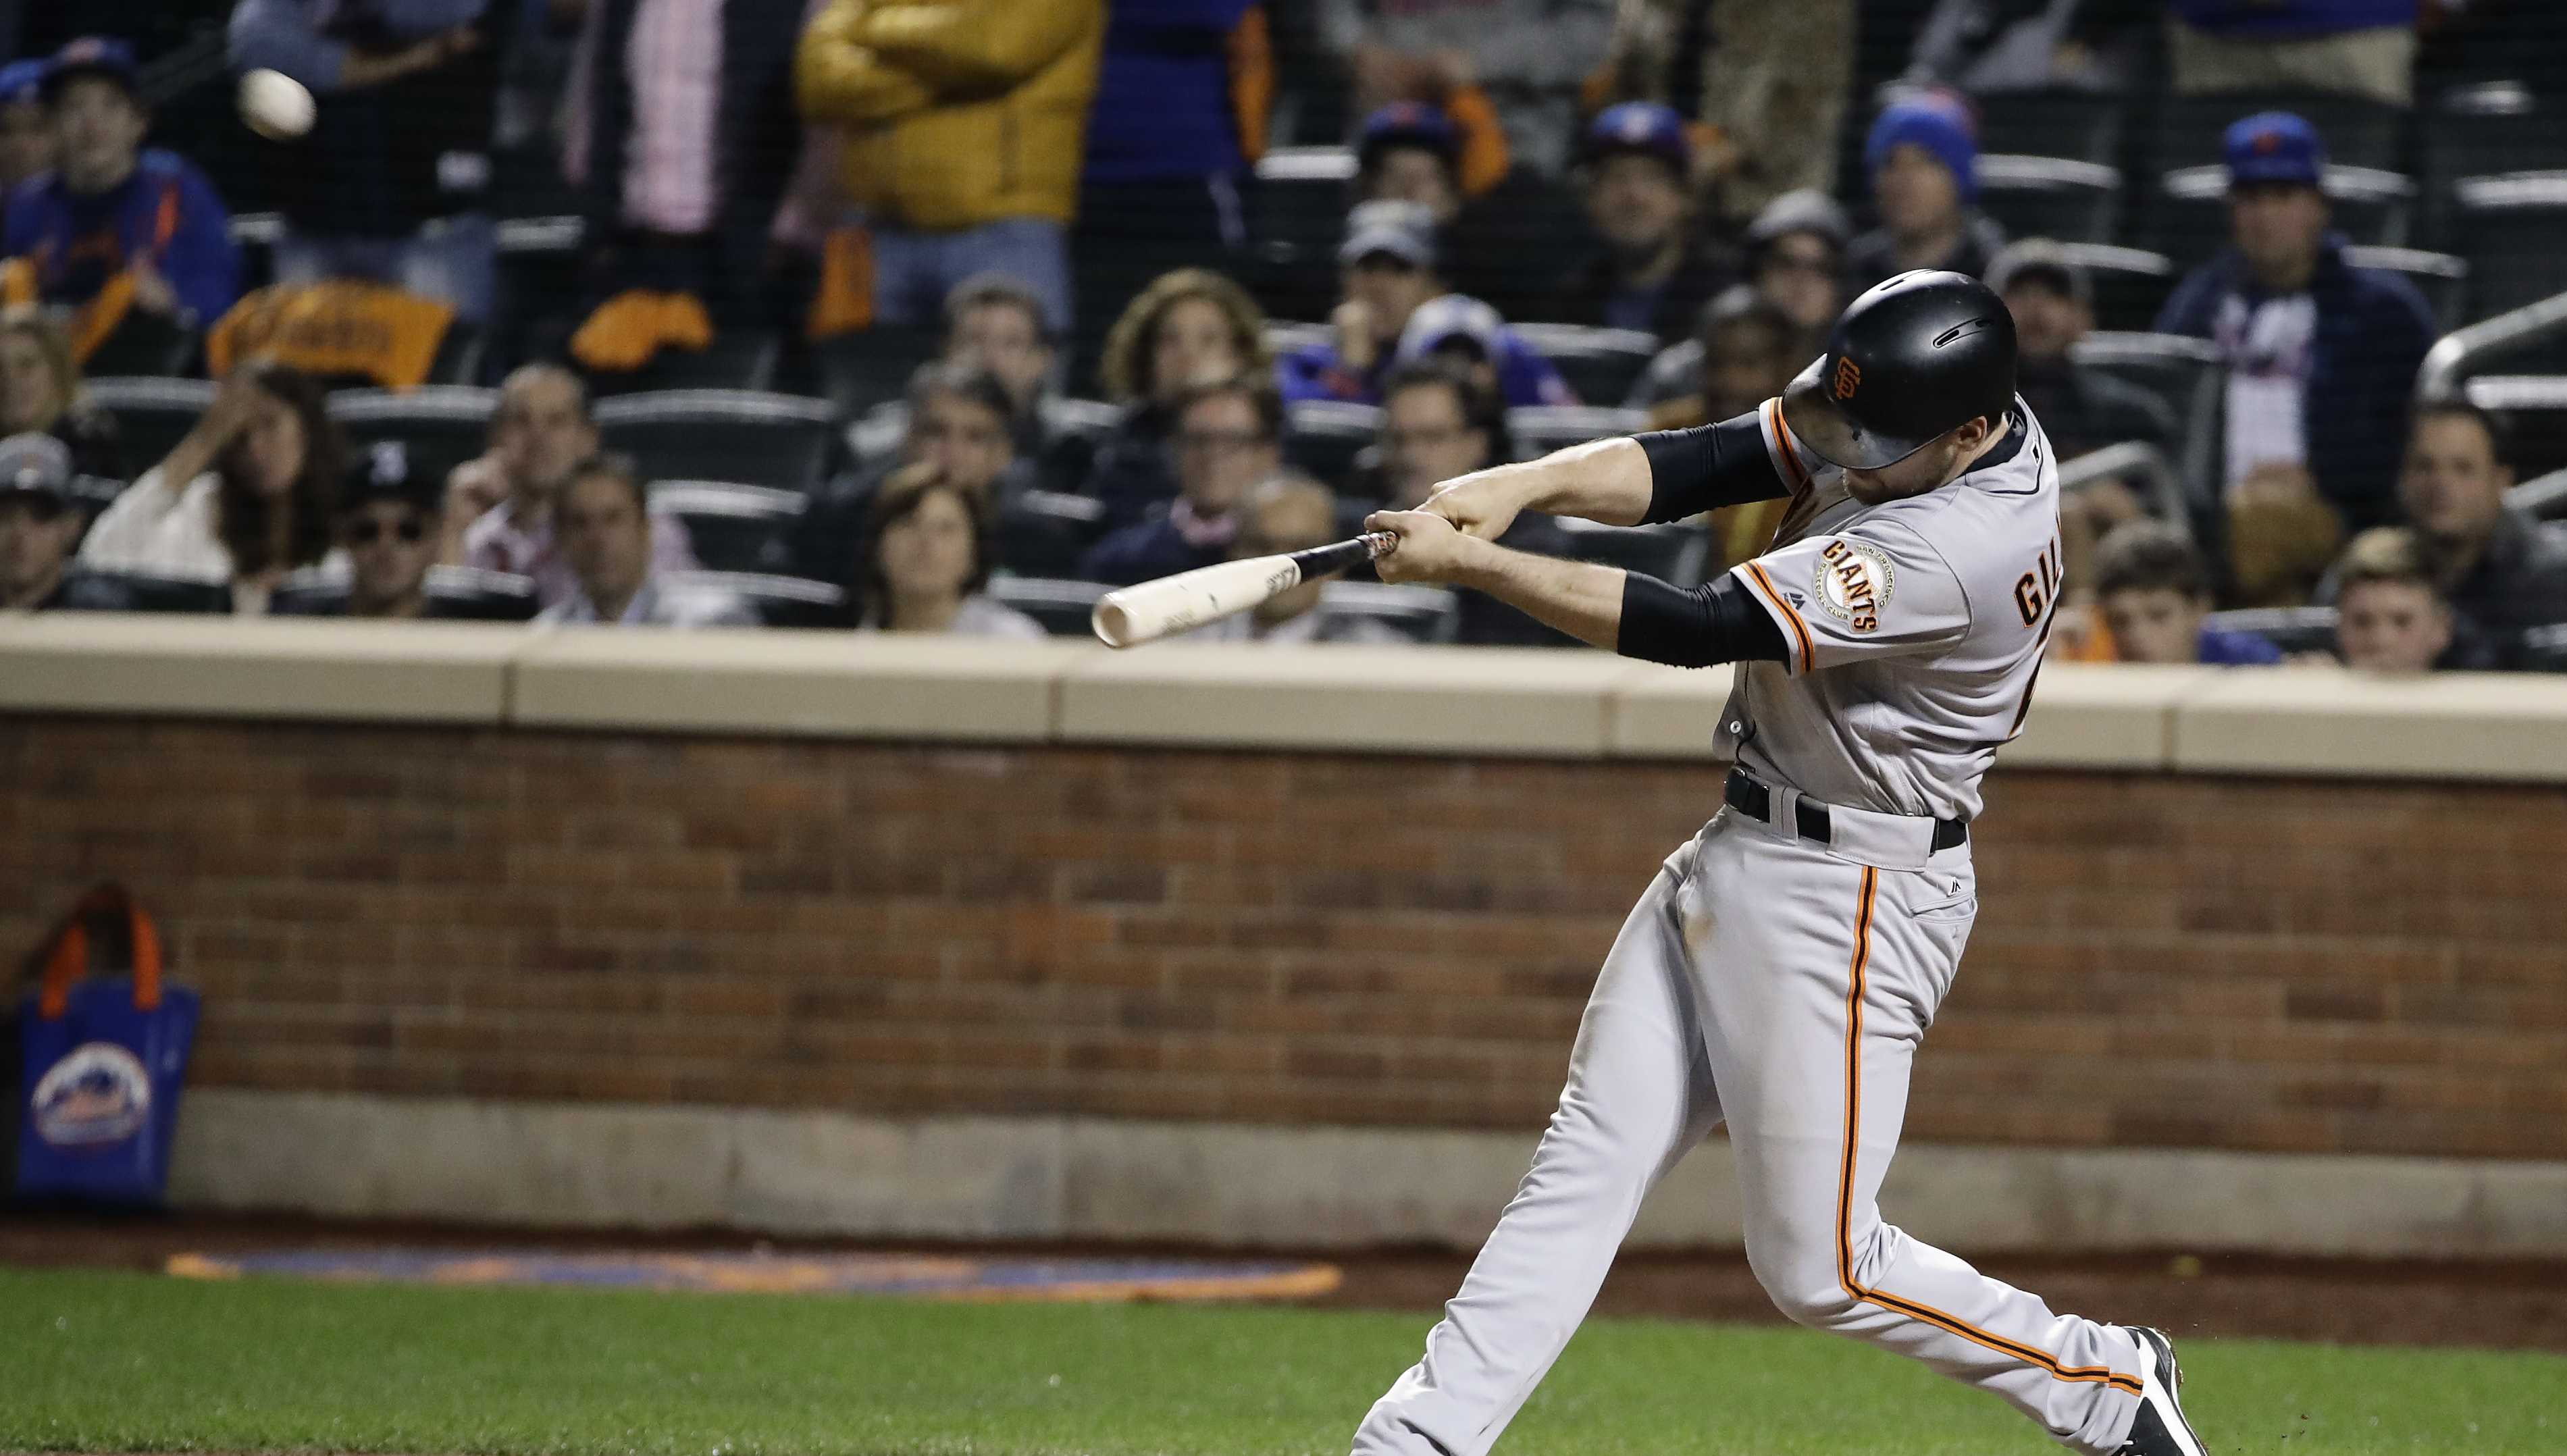 San Francisco Giants' Conor Gillaspie connects for a three-run home run against the San Francisco Giants during the ninth inning of the National League wild-card baseball game, Wednesday, Oct. 5, 2016, in New York. The Giants won 3-0.